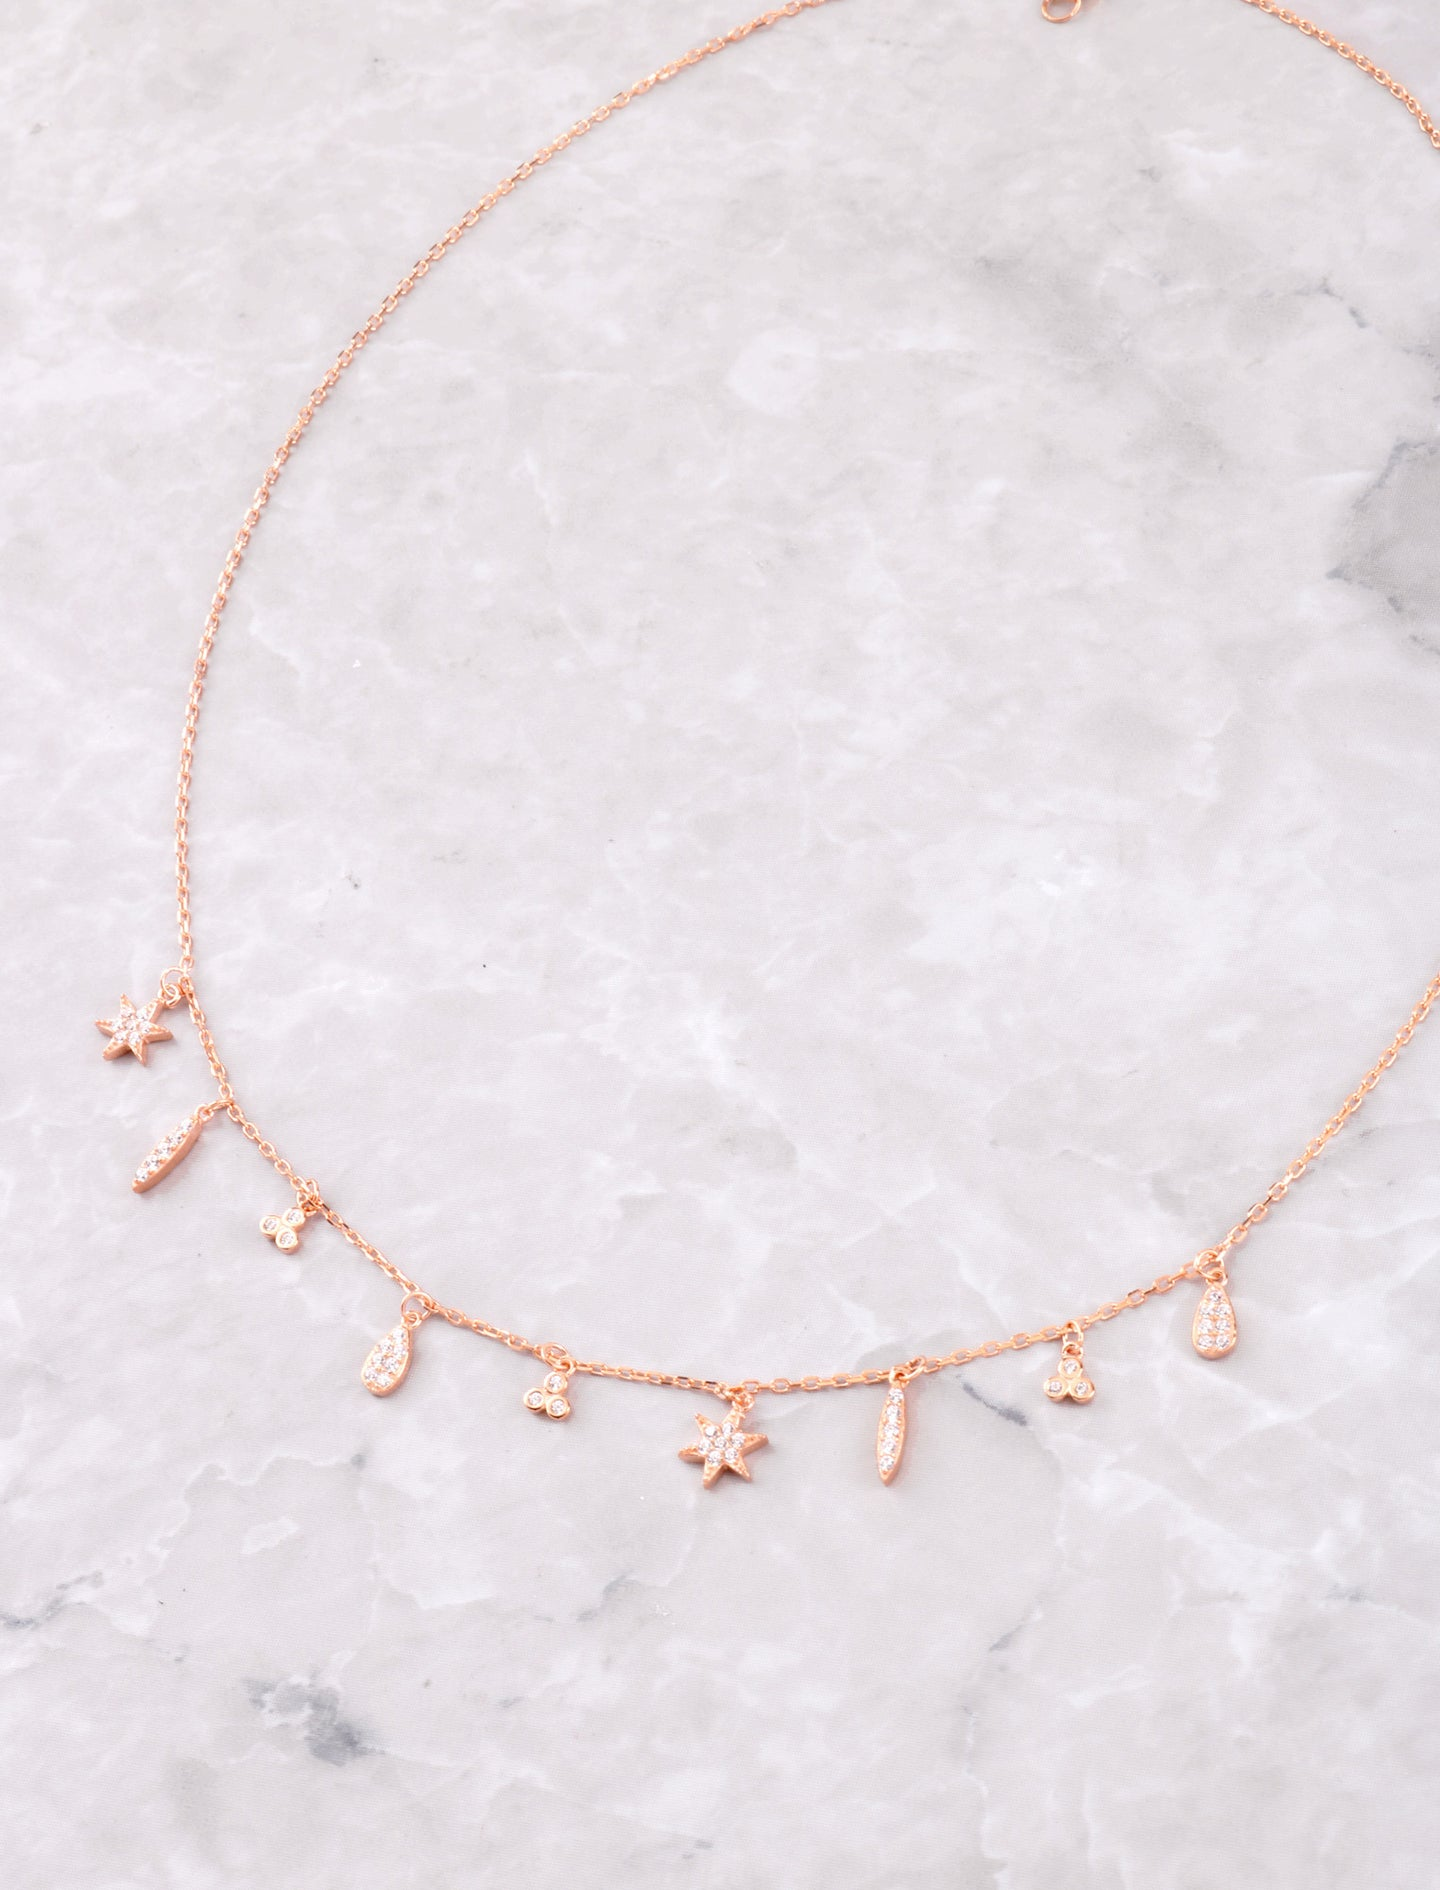 Hanging Symbols Necklace Anarchy Street Rosegold